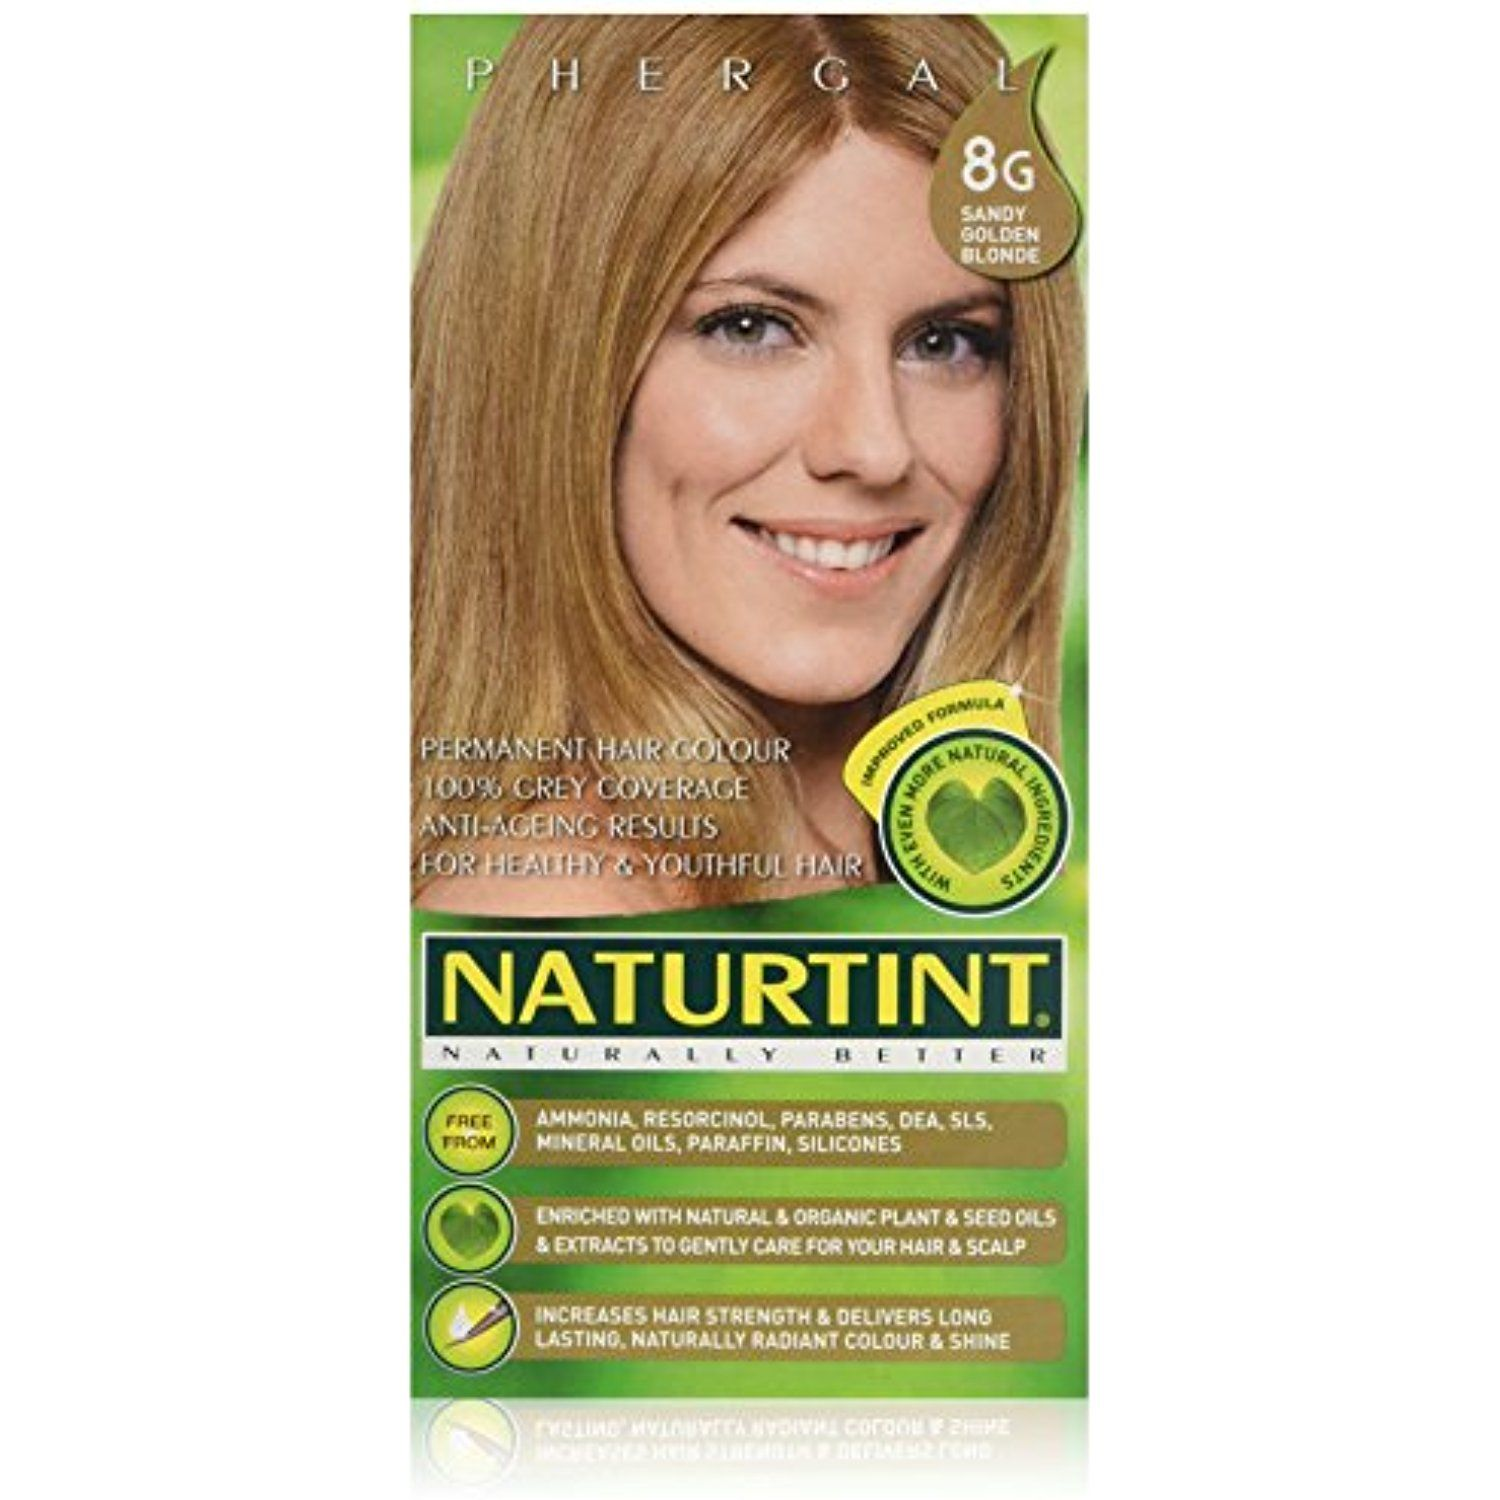 Phergal Naturtint Hair Color Permanent 8g Sandy Golden Blonde 5 28 Ounce Check Out This Great Product This Permanent Hair Color Hair Color Dark Blonde